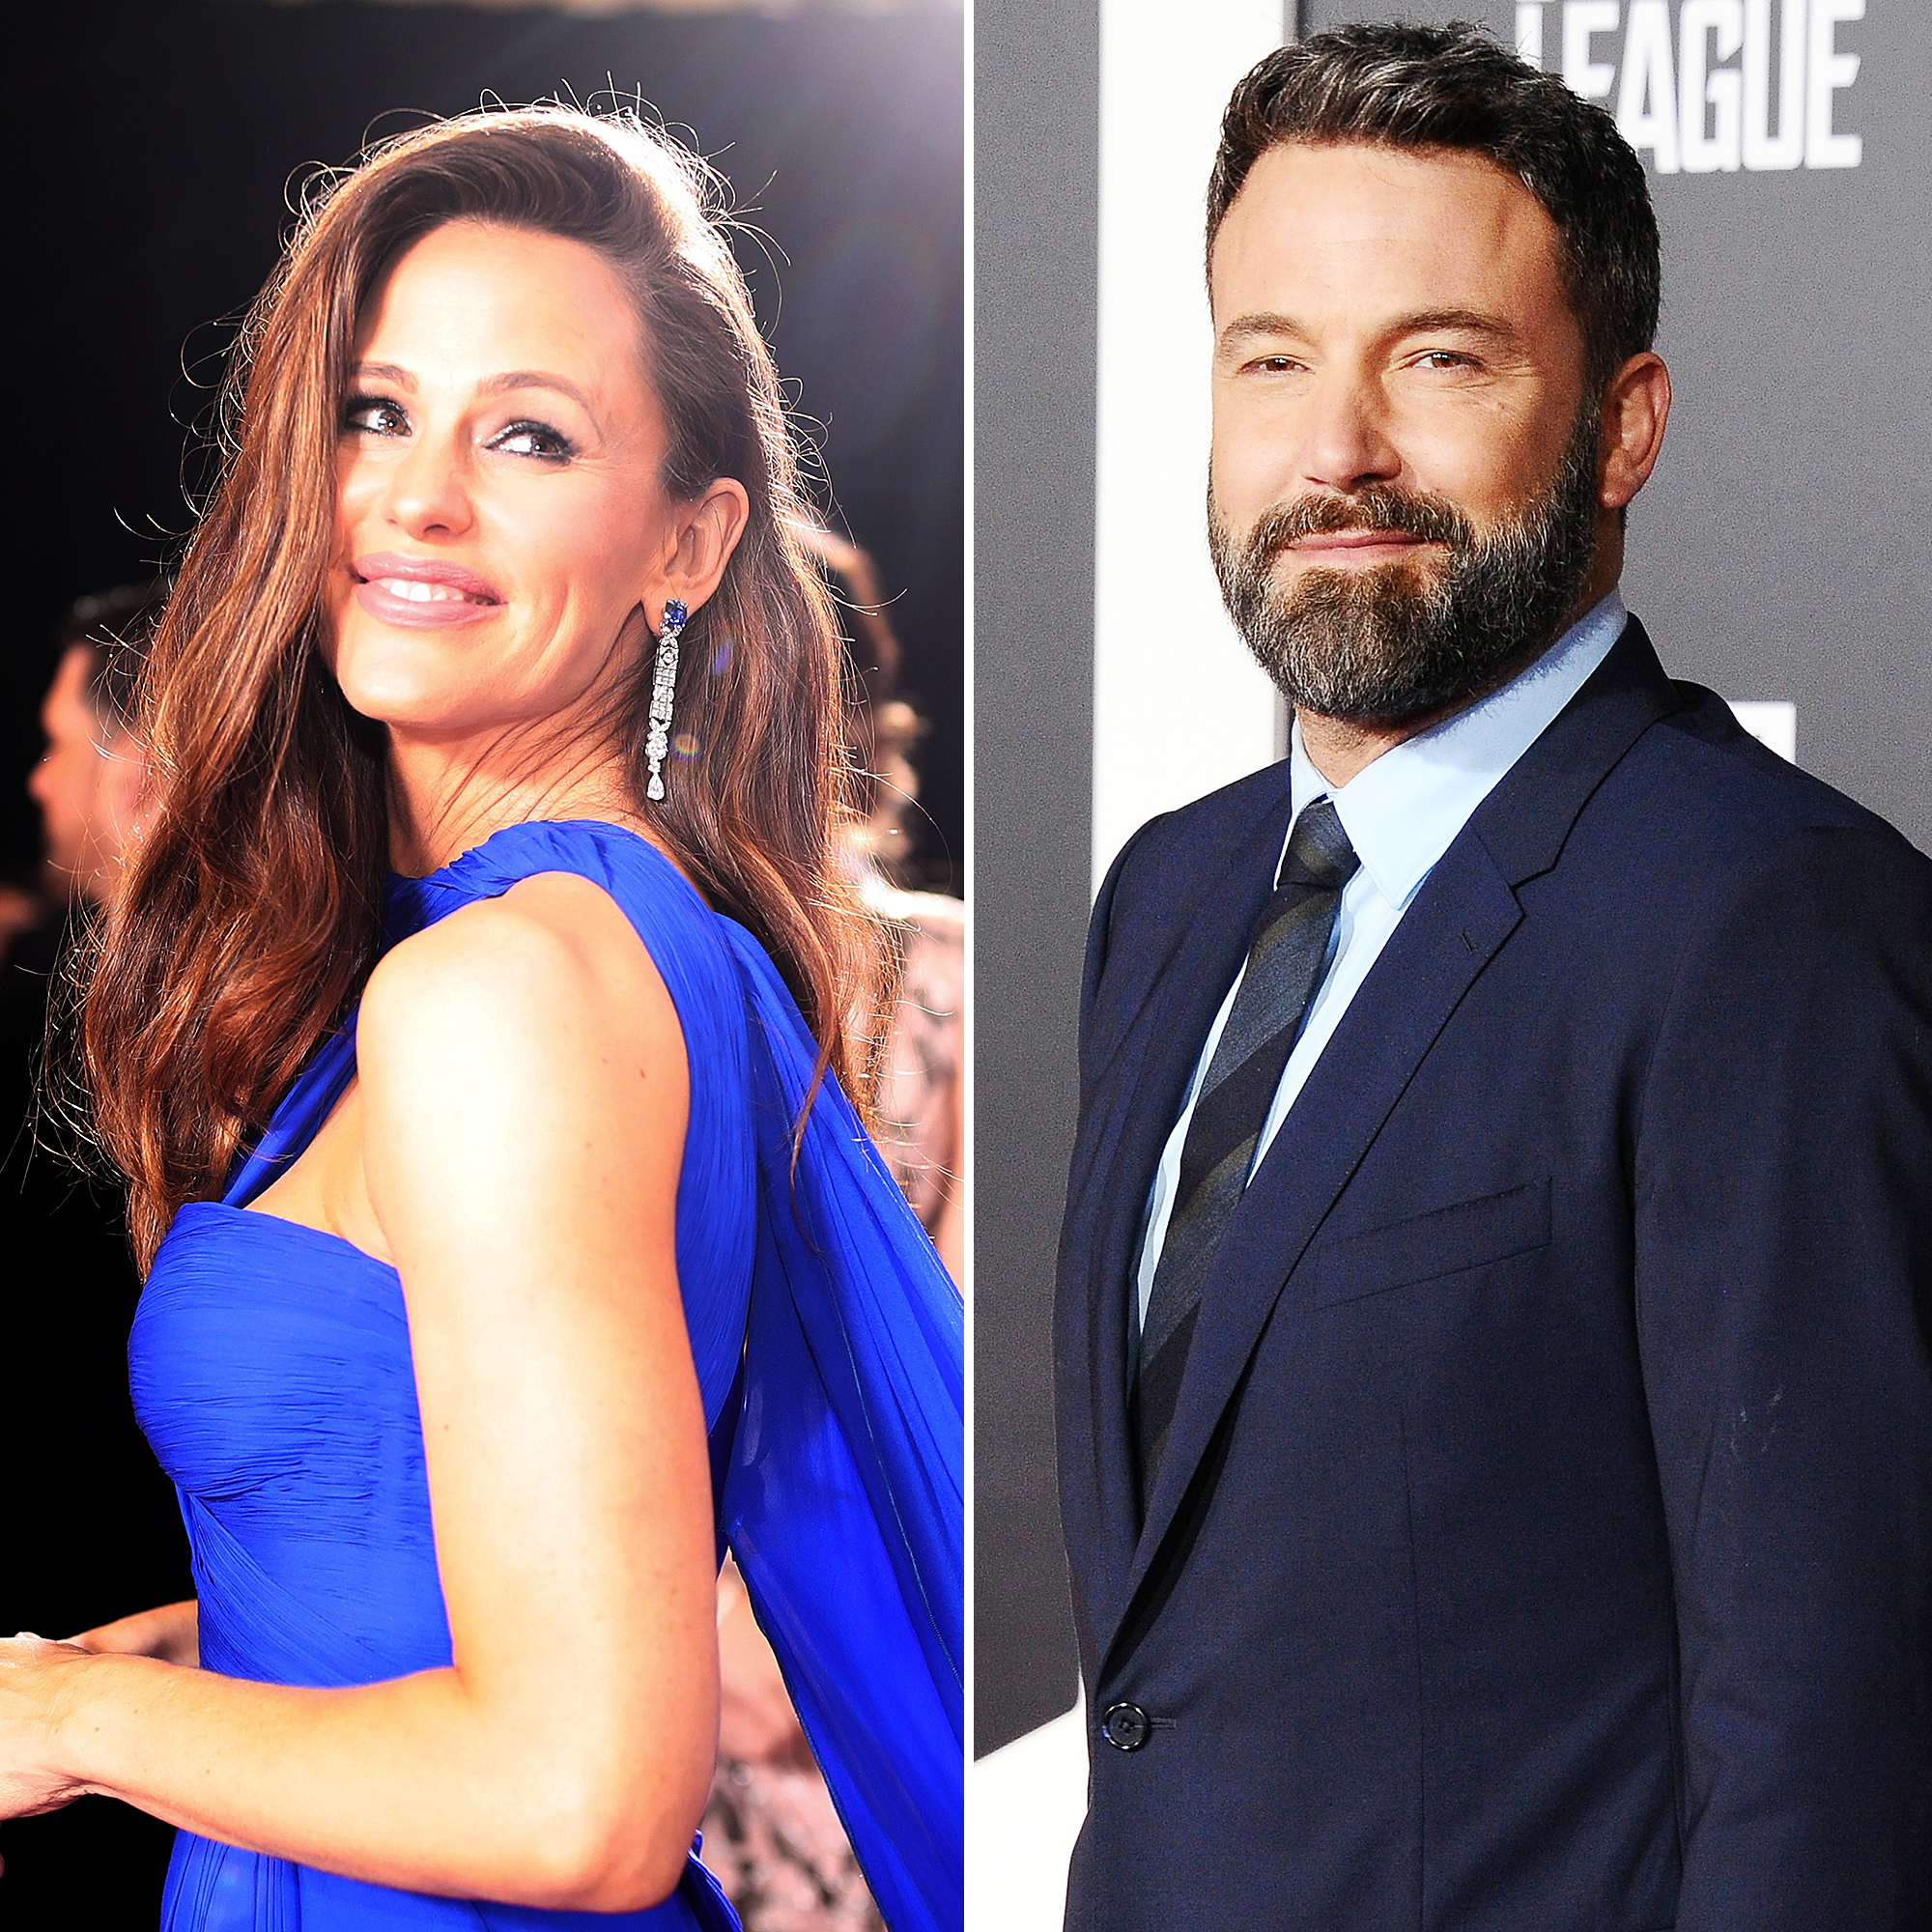 Will ennifer Garner and Ben Affleck Reunite